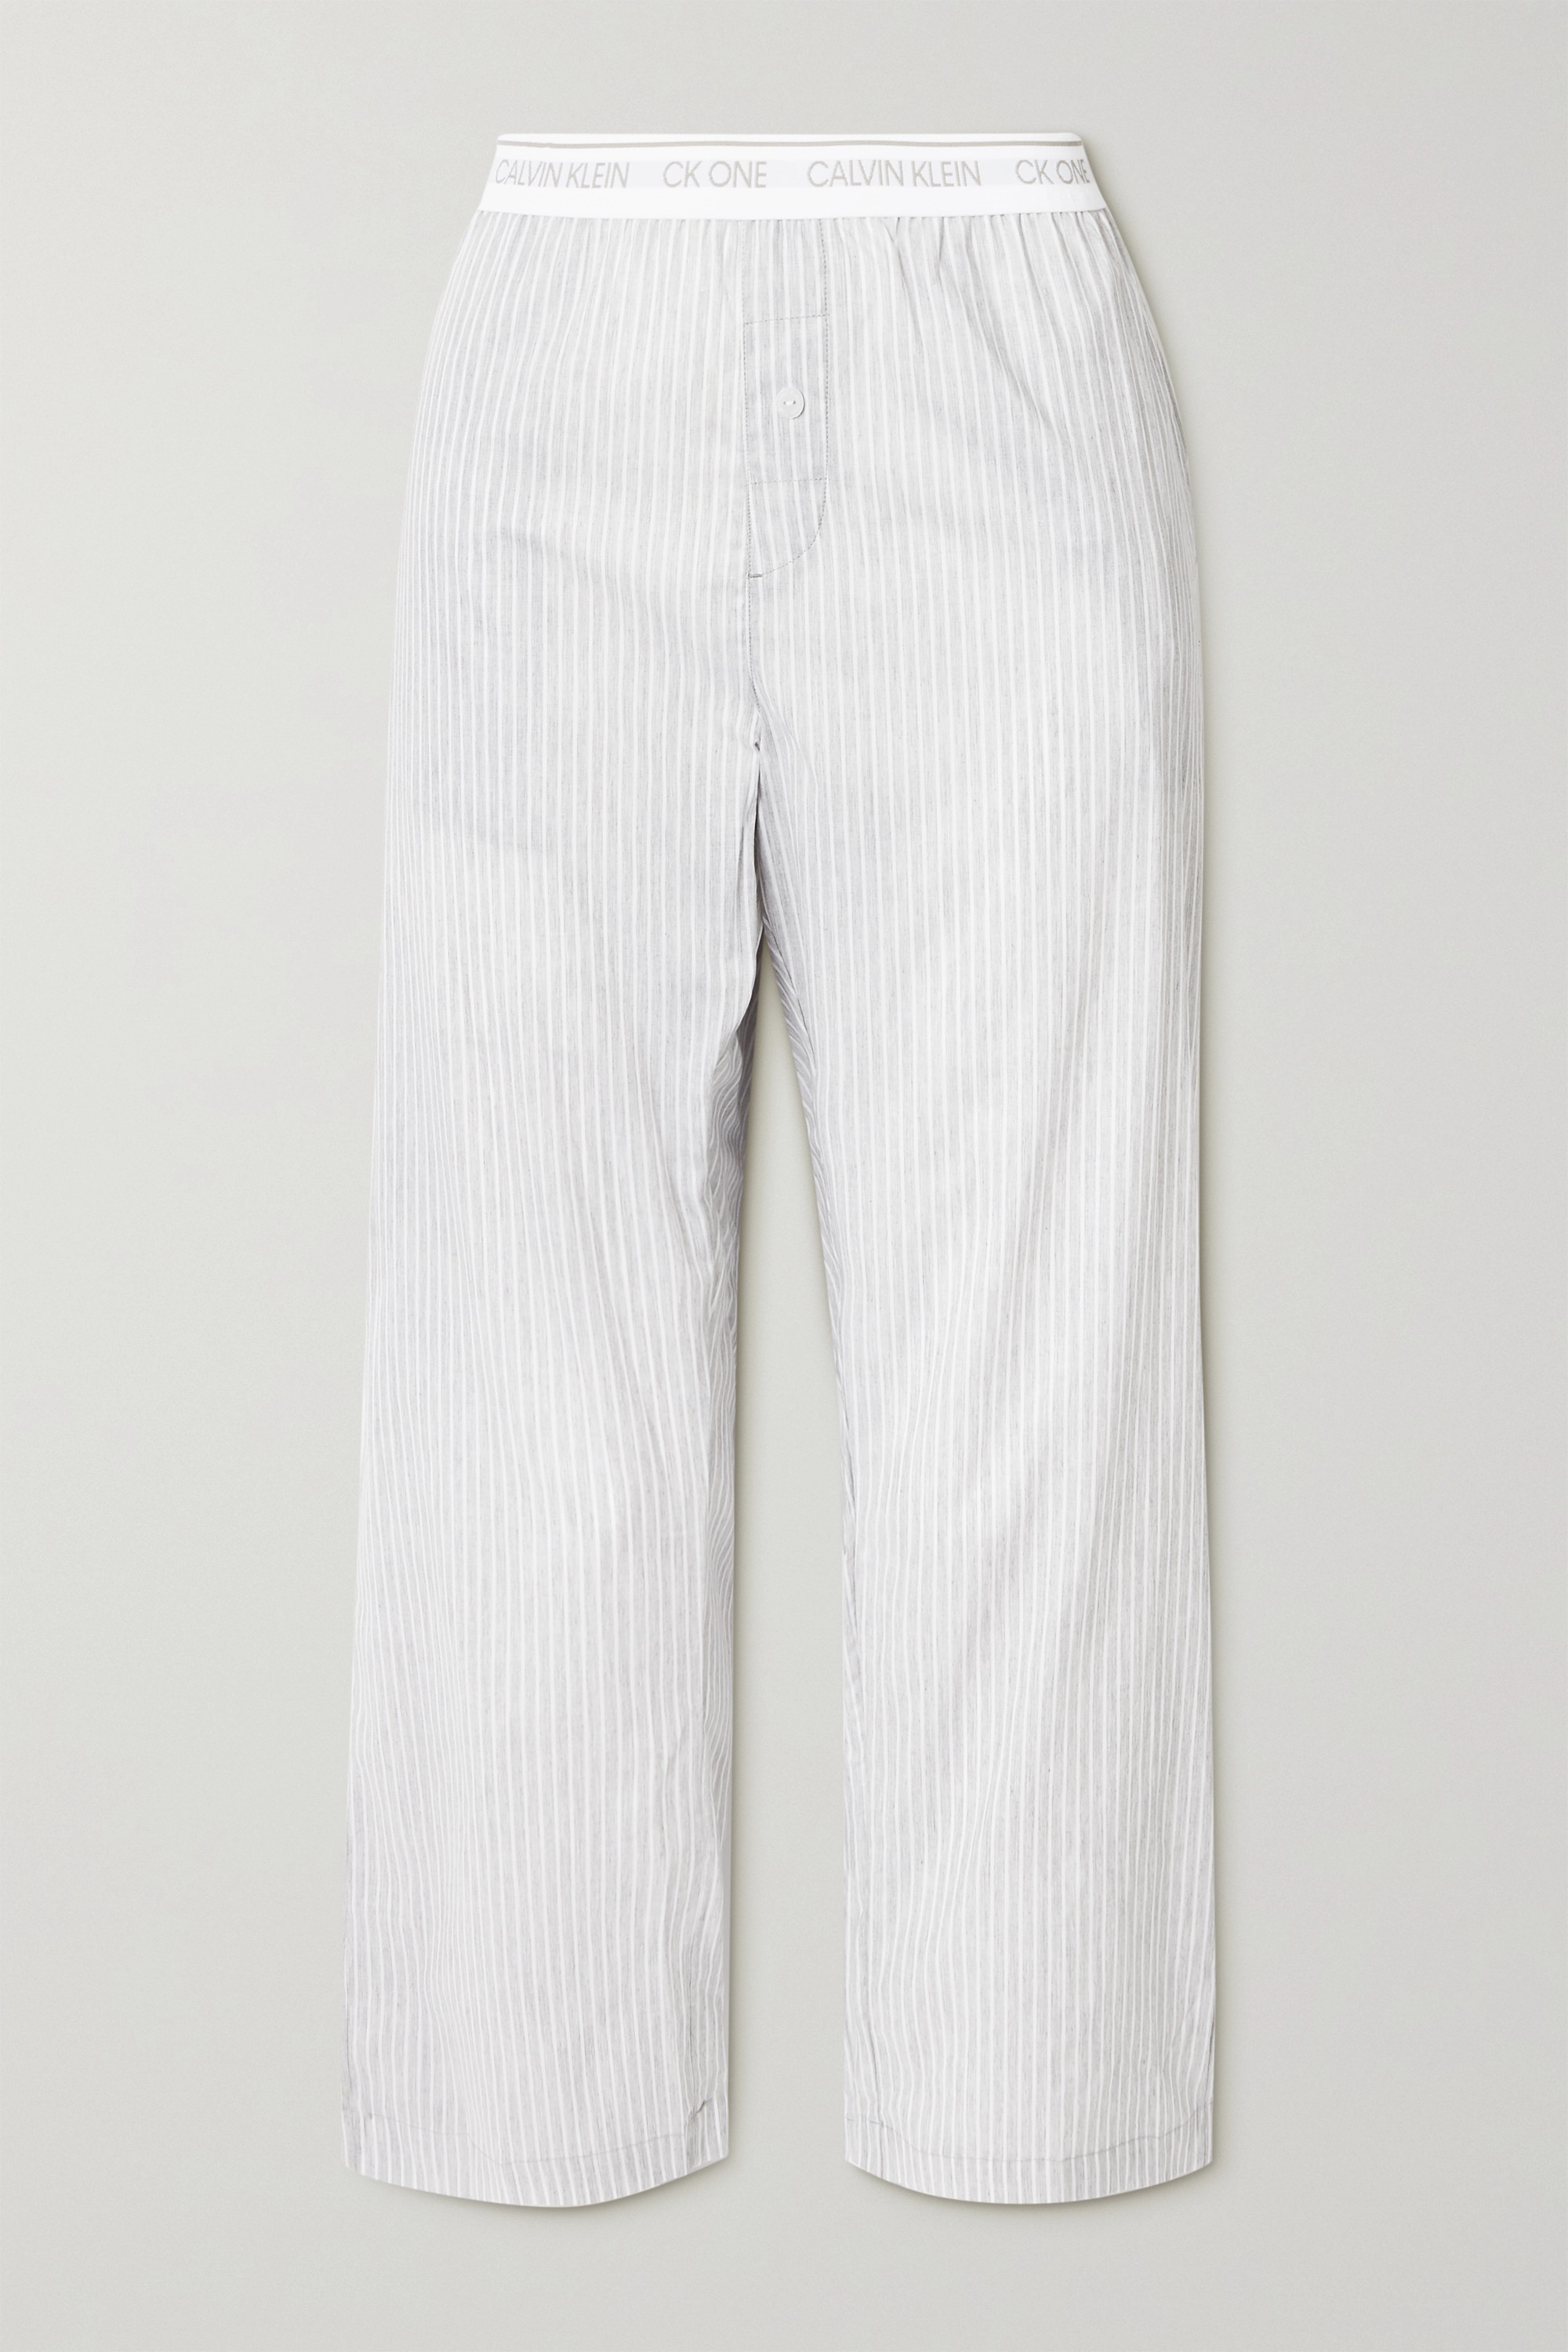 Calvin Klein Underwear Striped cotton-voile pajama pants